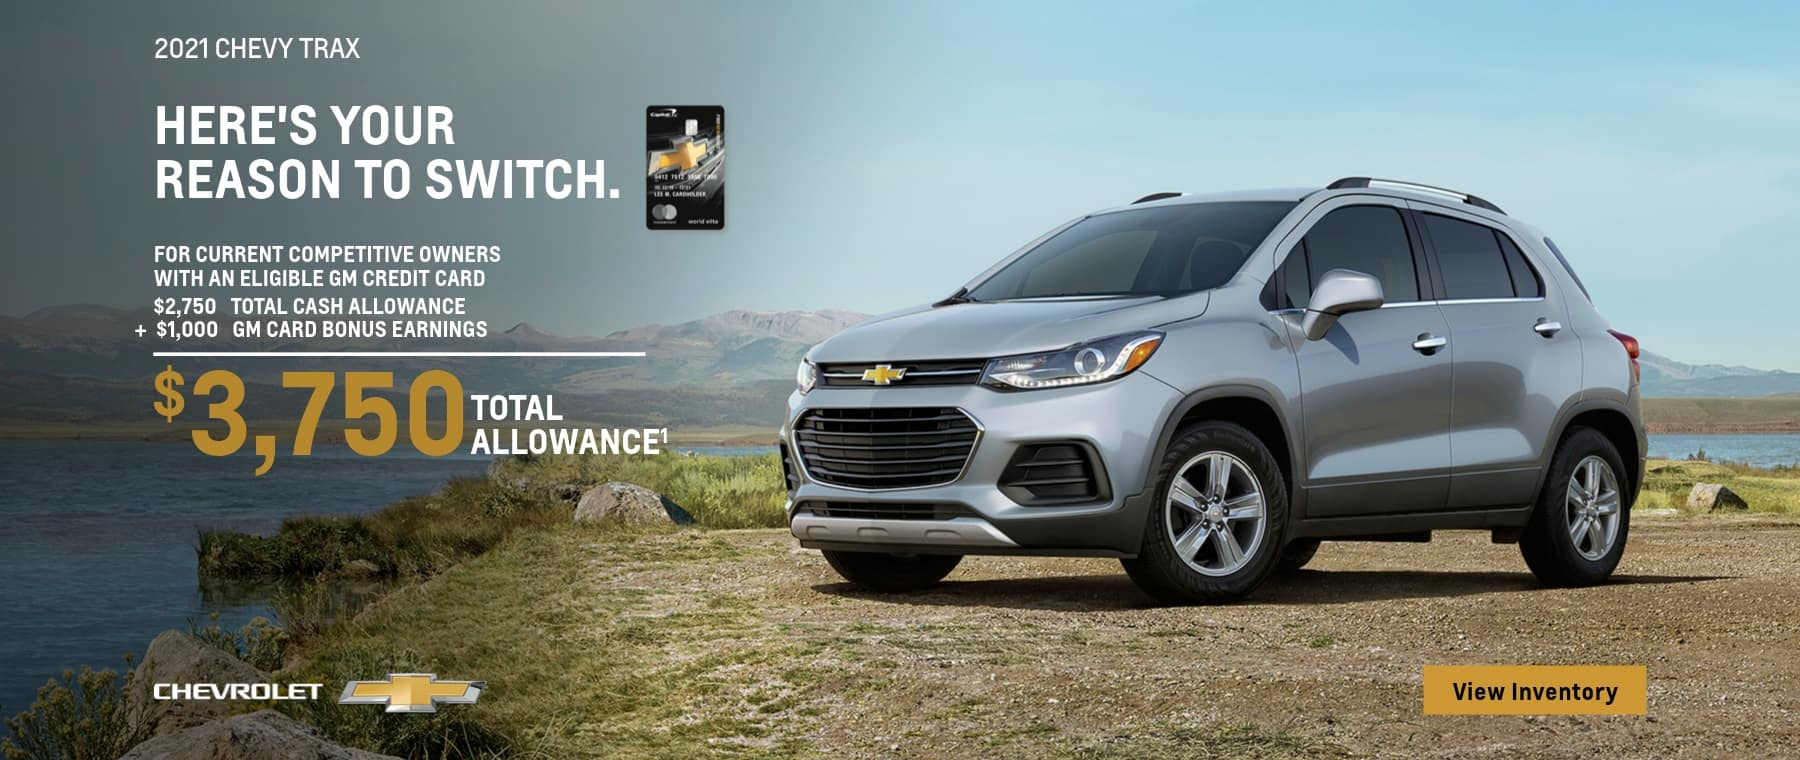 2021 chevy trax for current competitive owners with an eligible gm credit card $2,750 total cash allowance + $1,000 gm card bonus earnings chevrolet $3,750; total allowance1 3 view inventory